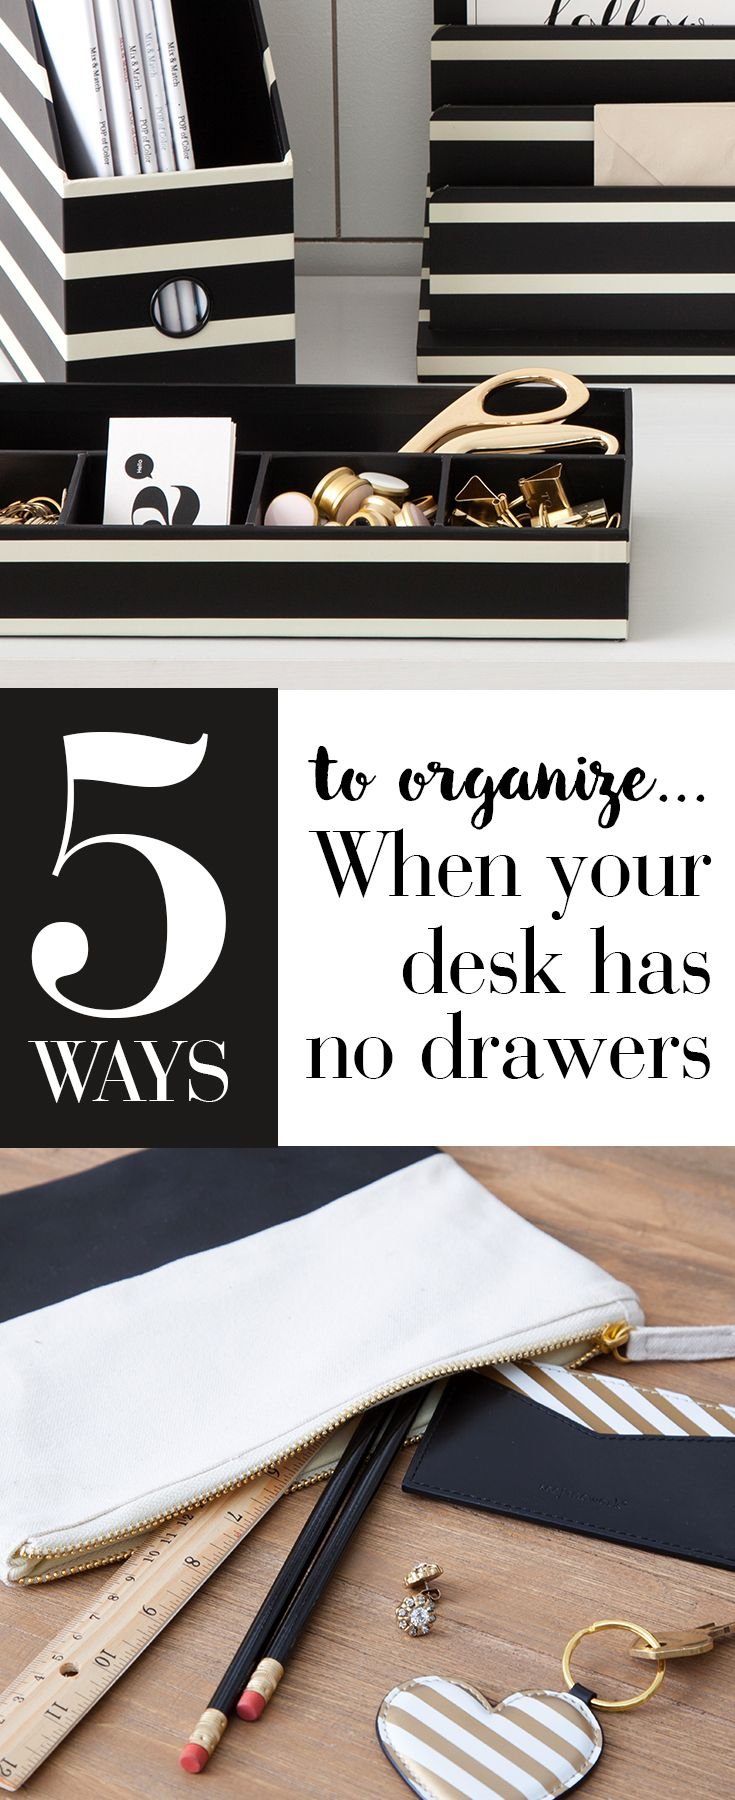 5 easy ways to organize a desk without drawers organization tricks